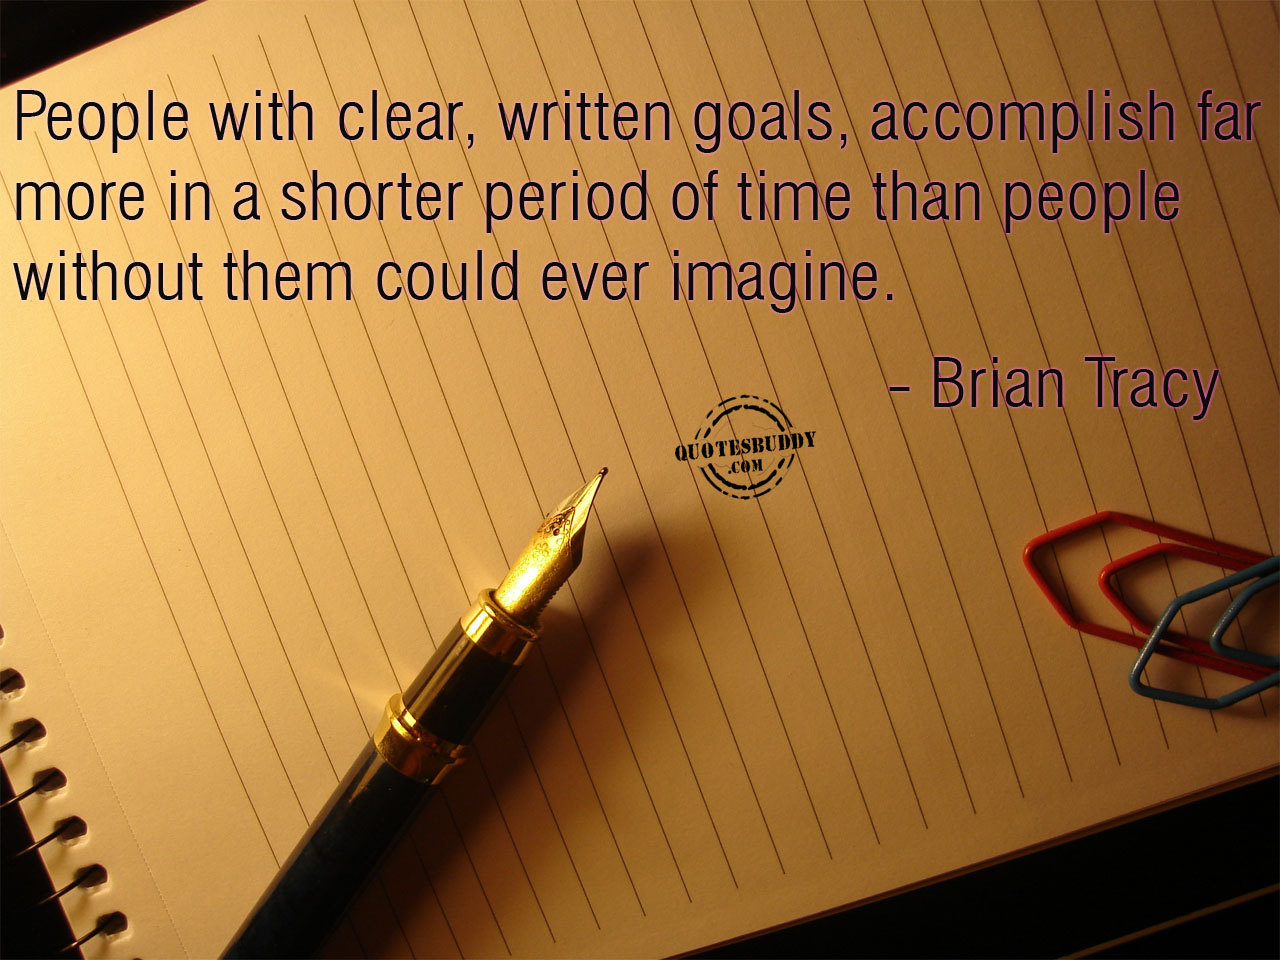 People With Clear, Written Goals Accomplish Far More In A Shorter Period Of Time Than People Without Them Could Ever Imagine